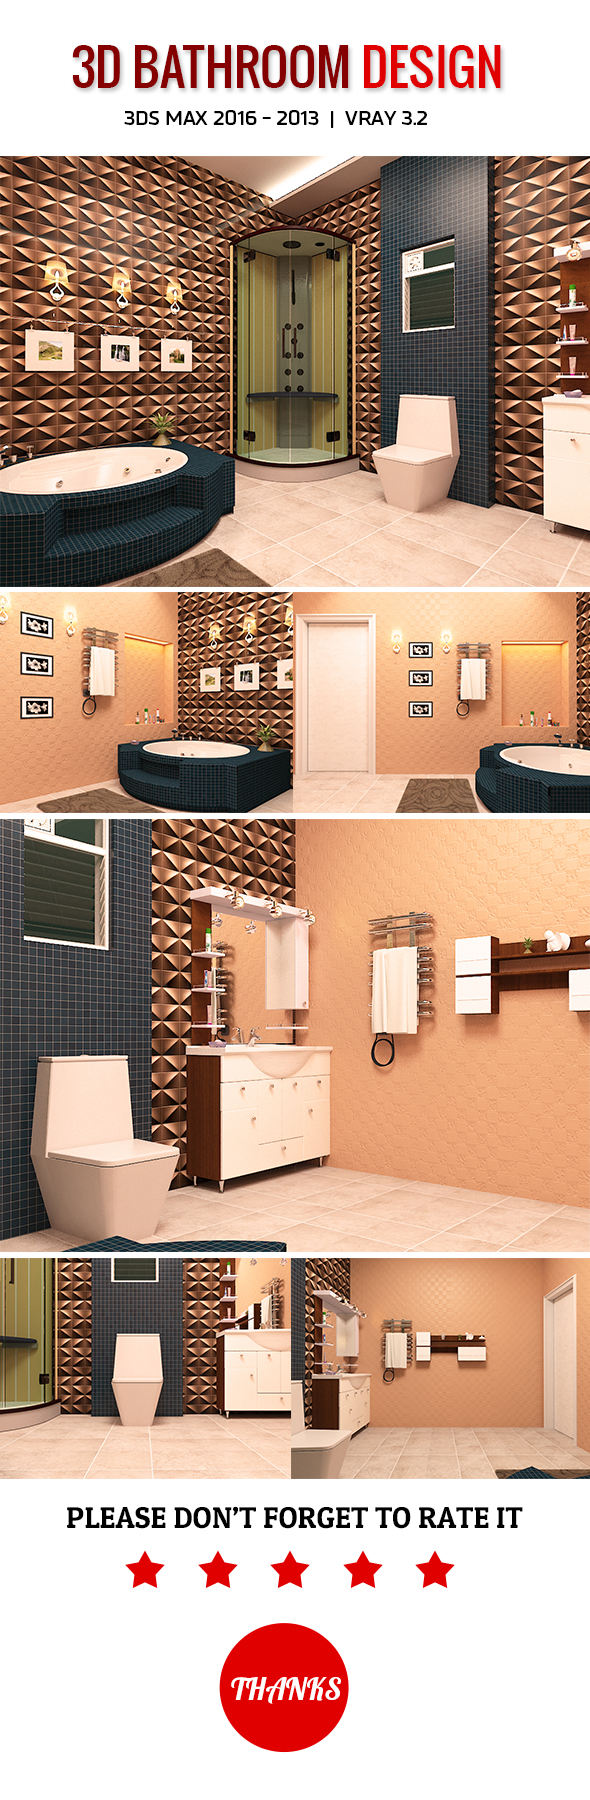 3D Bathroom Design - 3DOcean Item for Sale